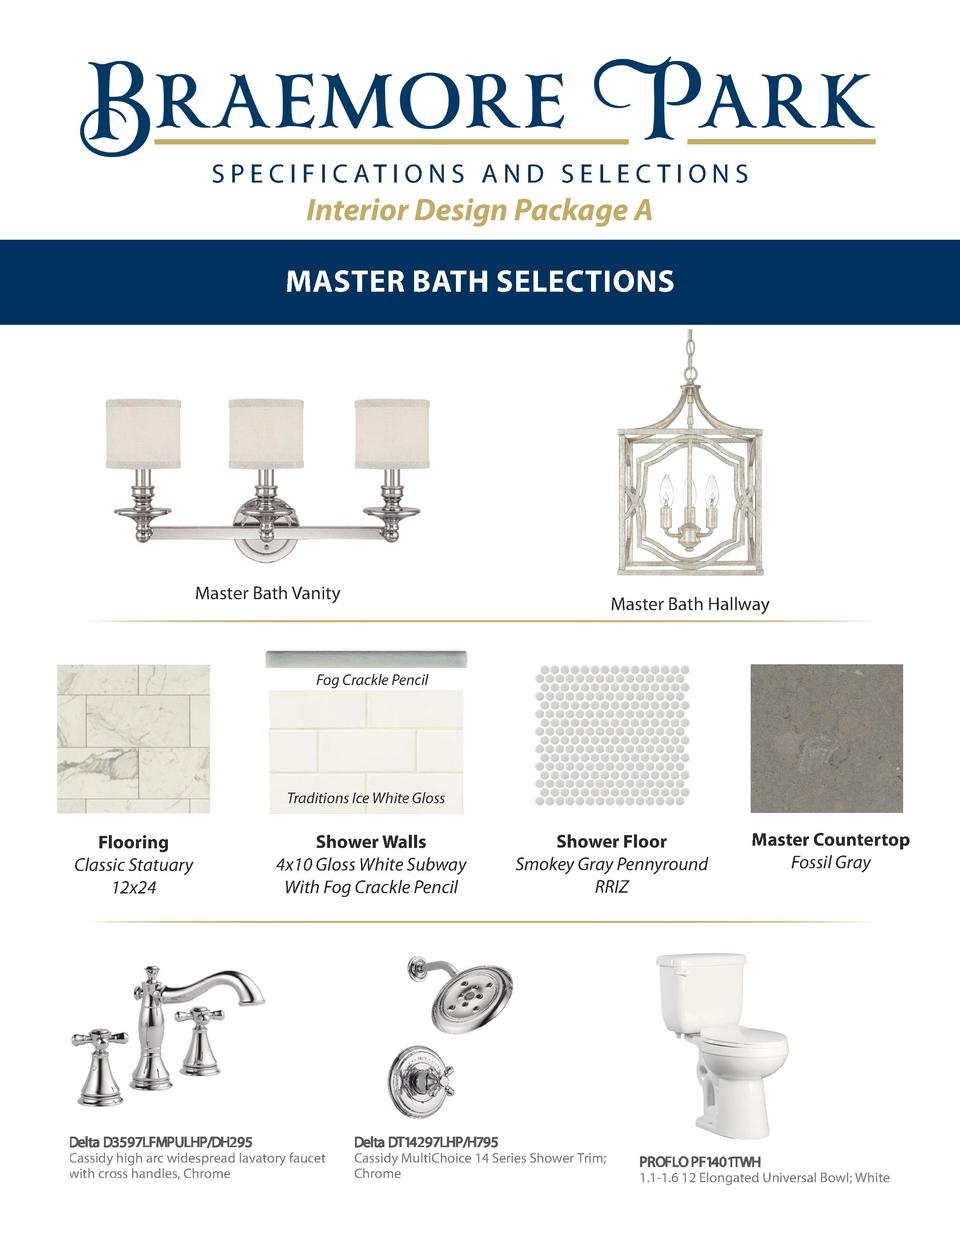 S P E C I F I C AT I O N S A N D S E L E C T I O N S  Interior Design Package A MASTER BATH SELECTIONS Braemore Braemore  ...